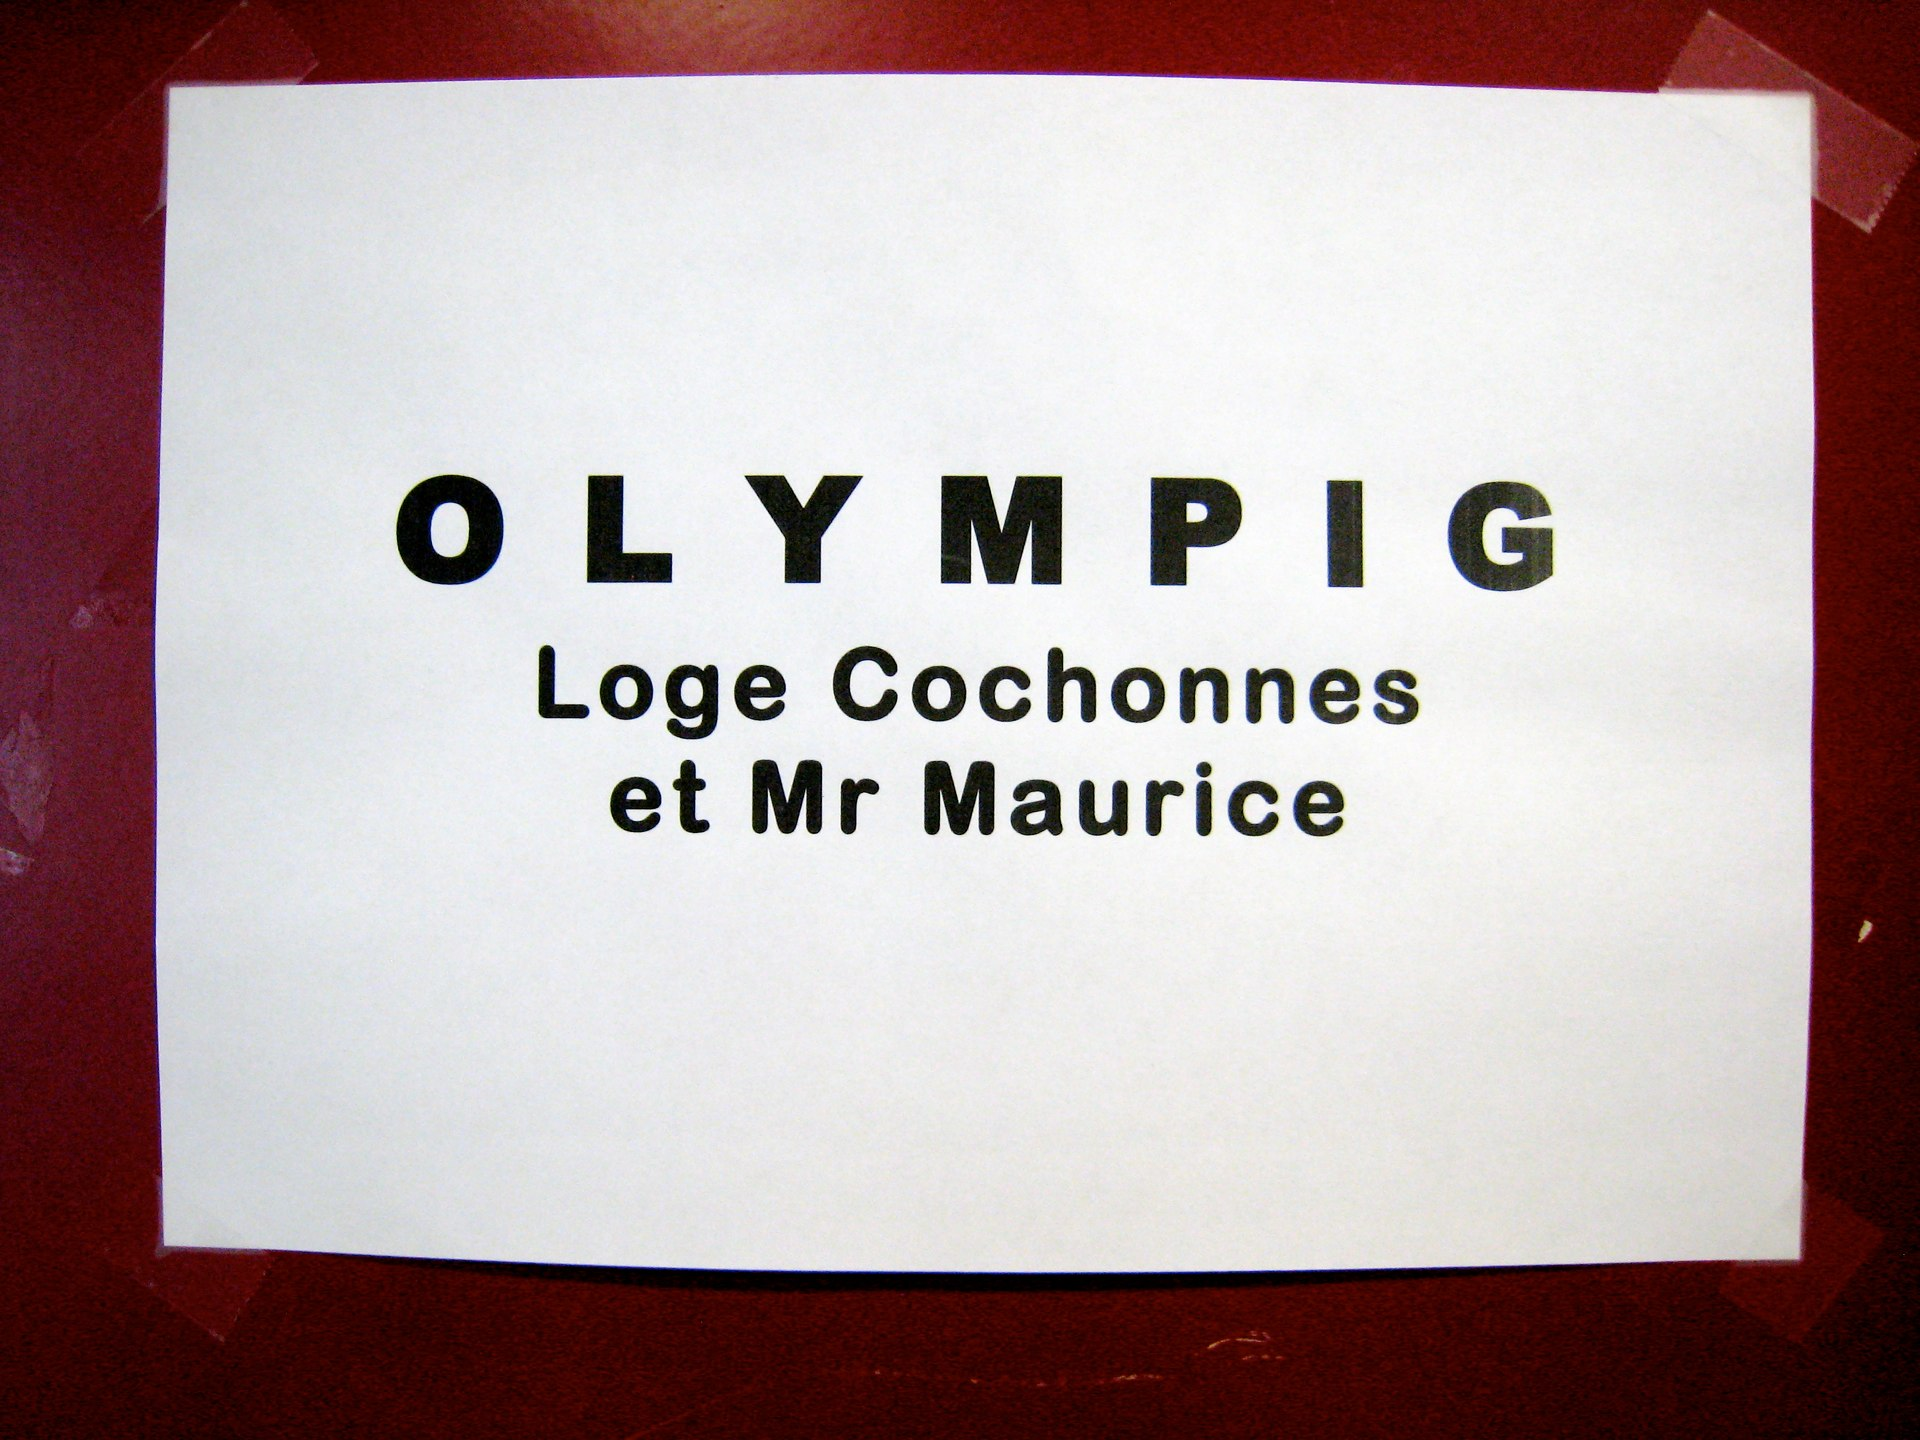 loges Olympig